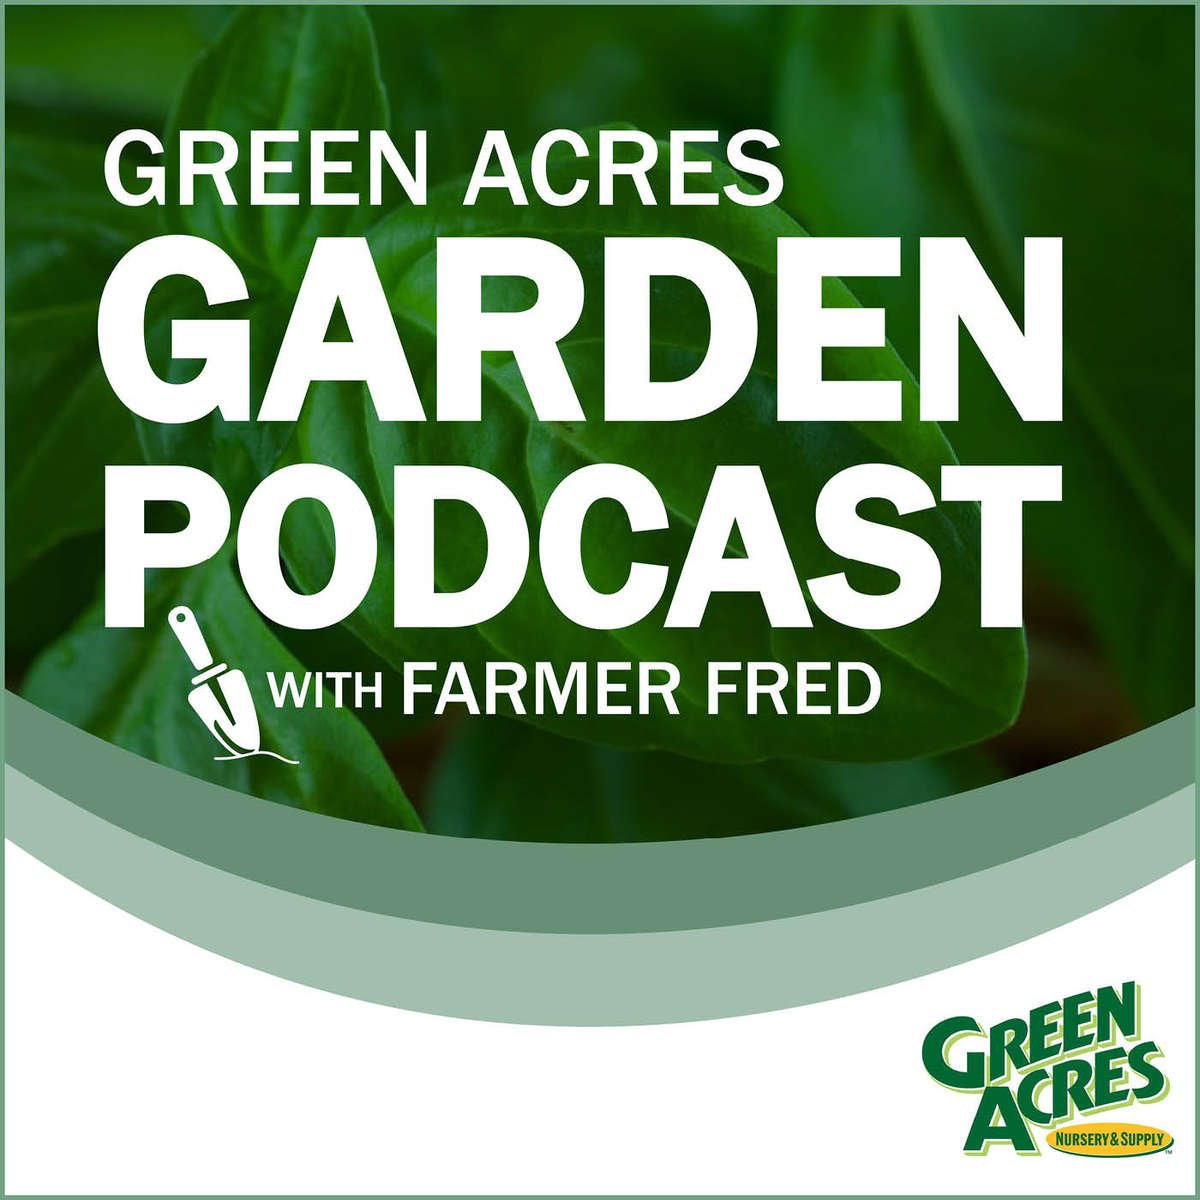 Green Acres Garden Podcast with Farmer Fred. Listen now!